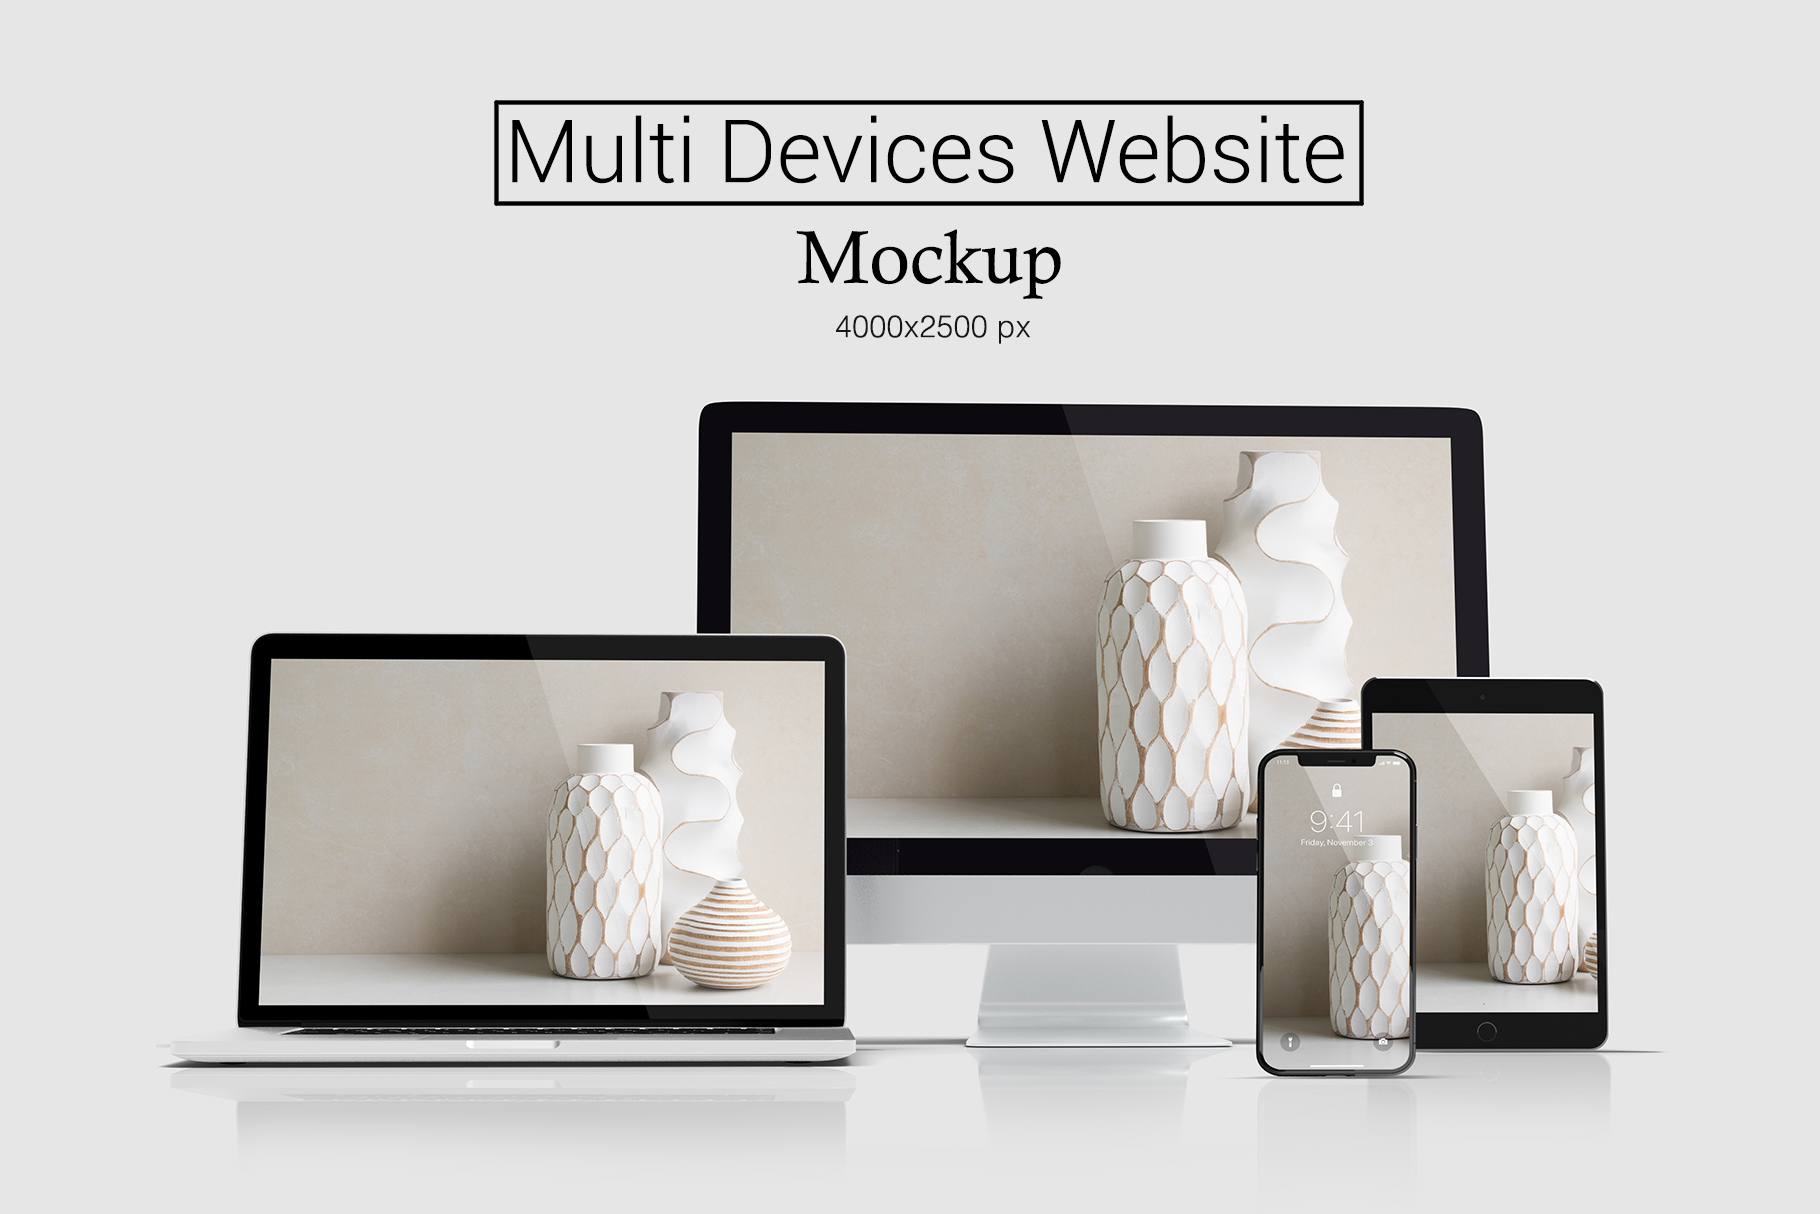 Multi Devices Website Mockup example image 1